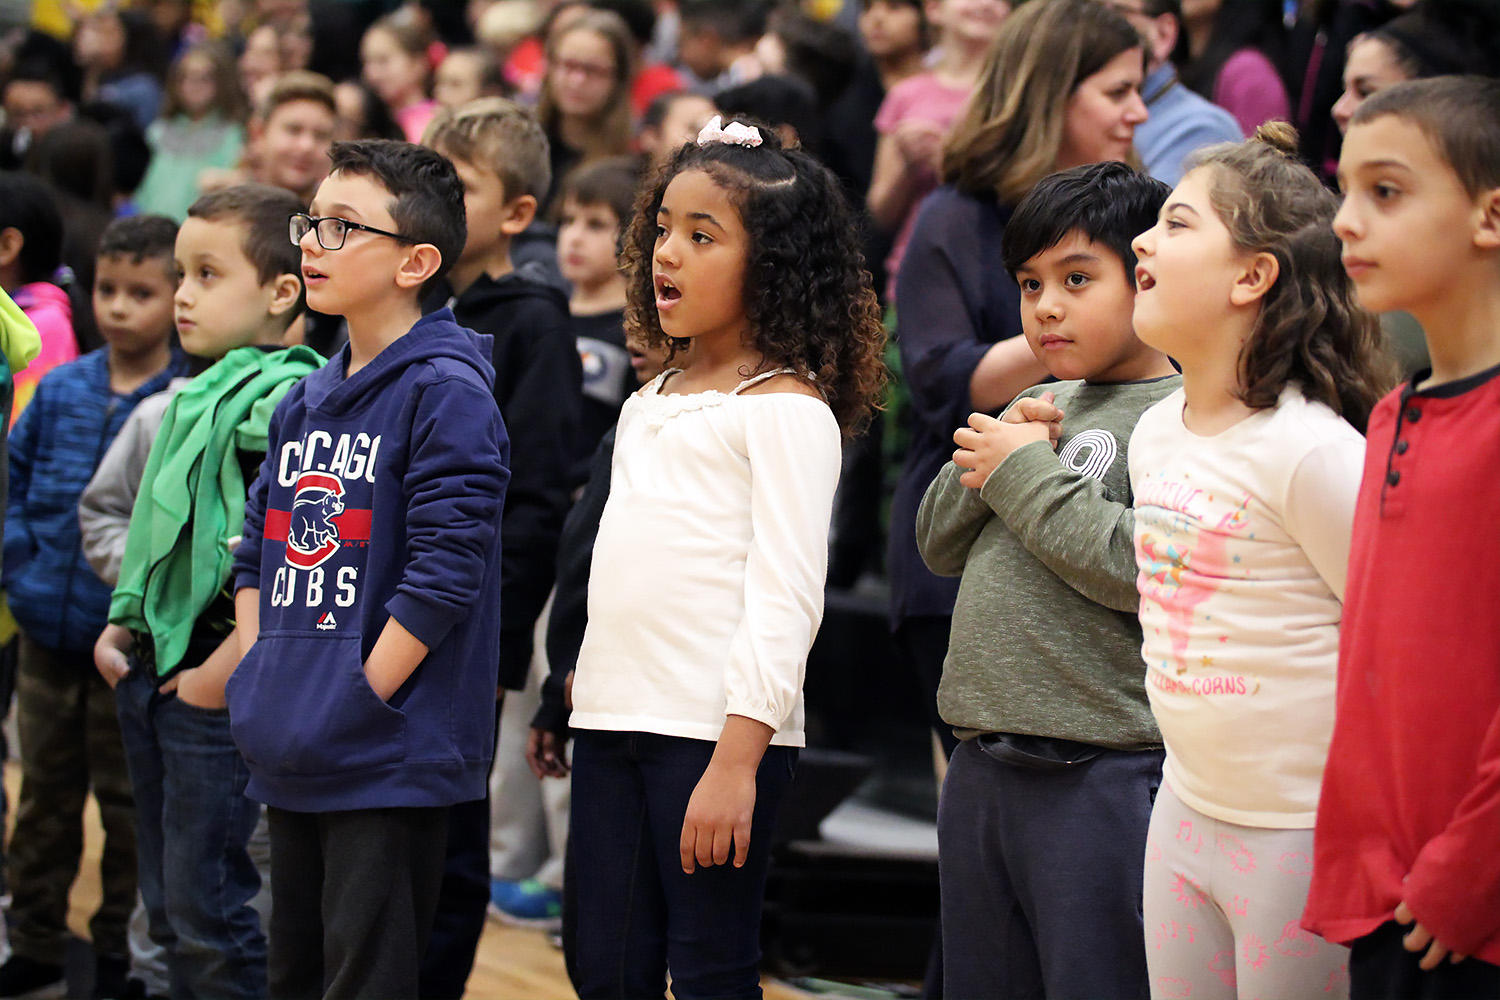 Elmwood students join the holiday sing-along at the conclusion of the 2018 Winter Concert.